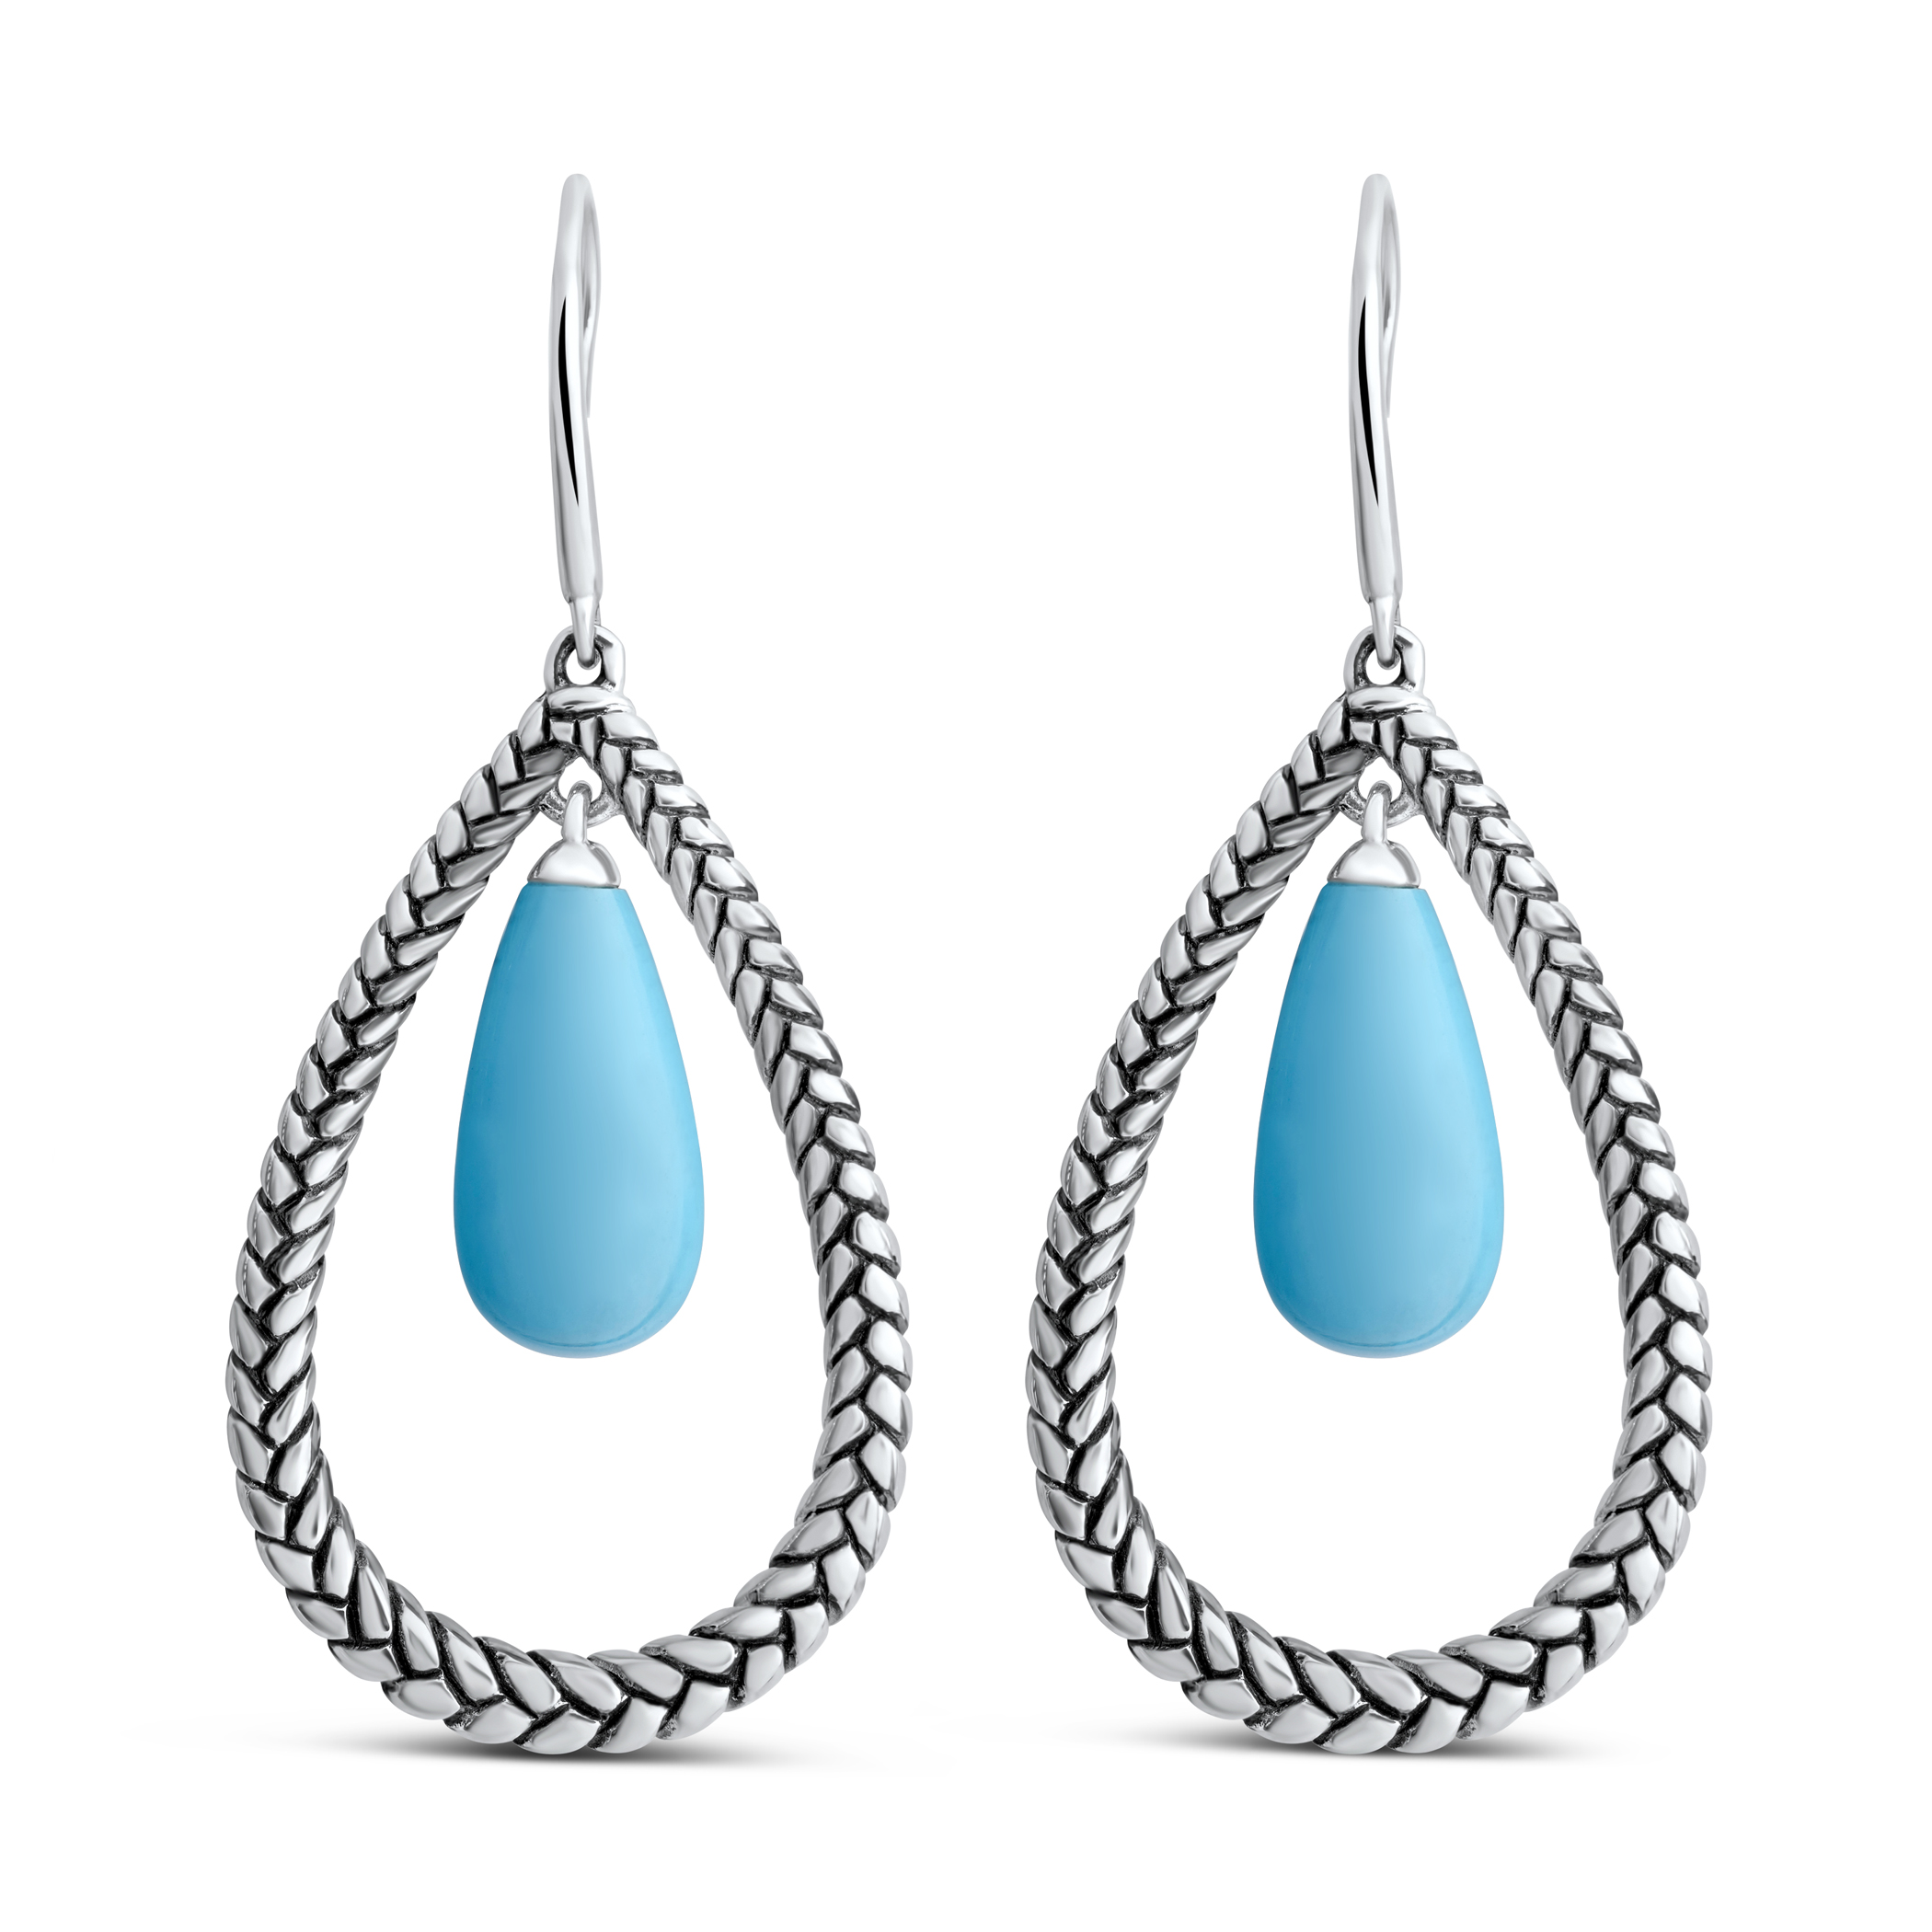 Marina Braid Silver Floating Pear Earrings image number 0